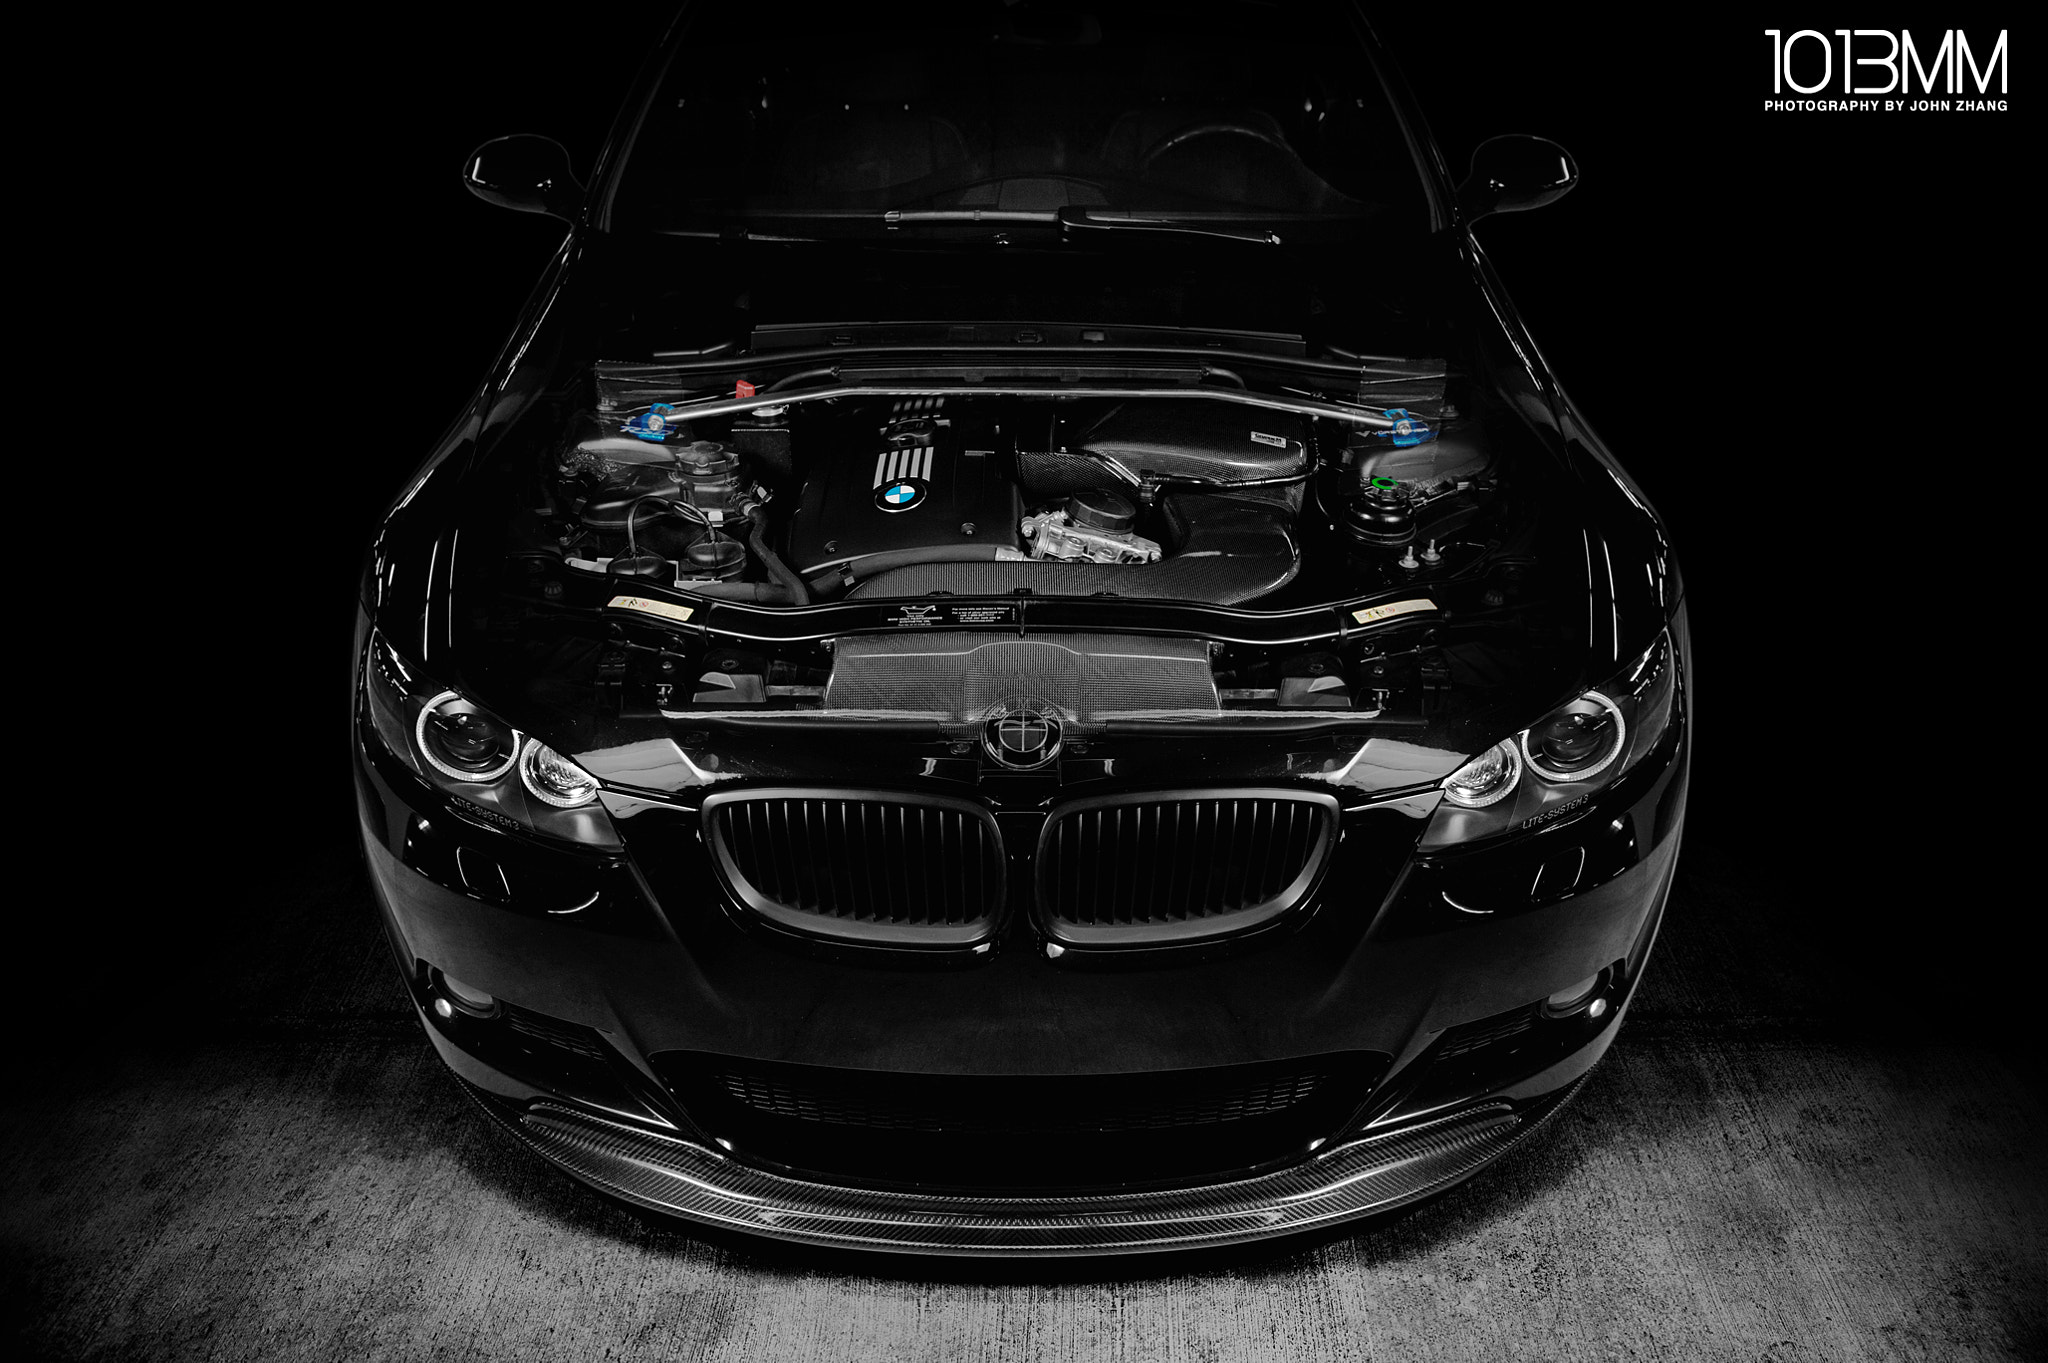 Photograph Alan's BMW 335i Coupe by John Zhang on 500px